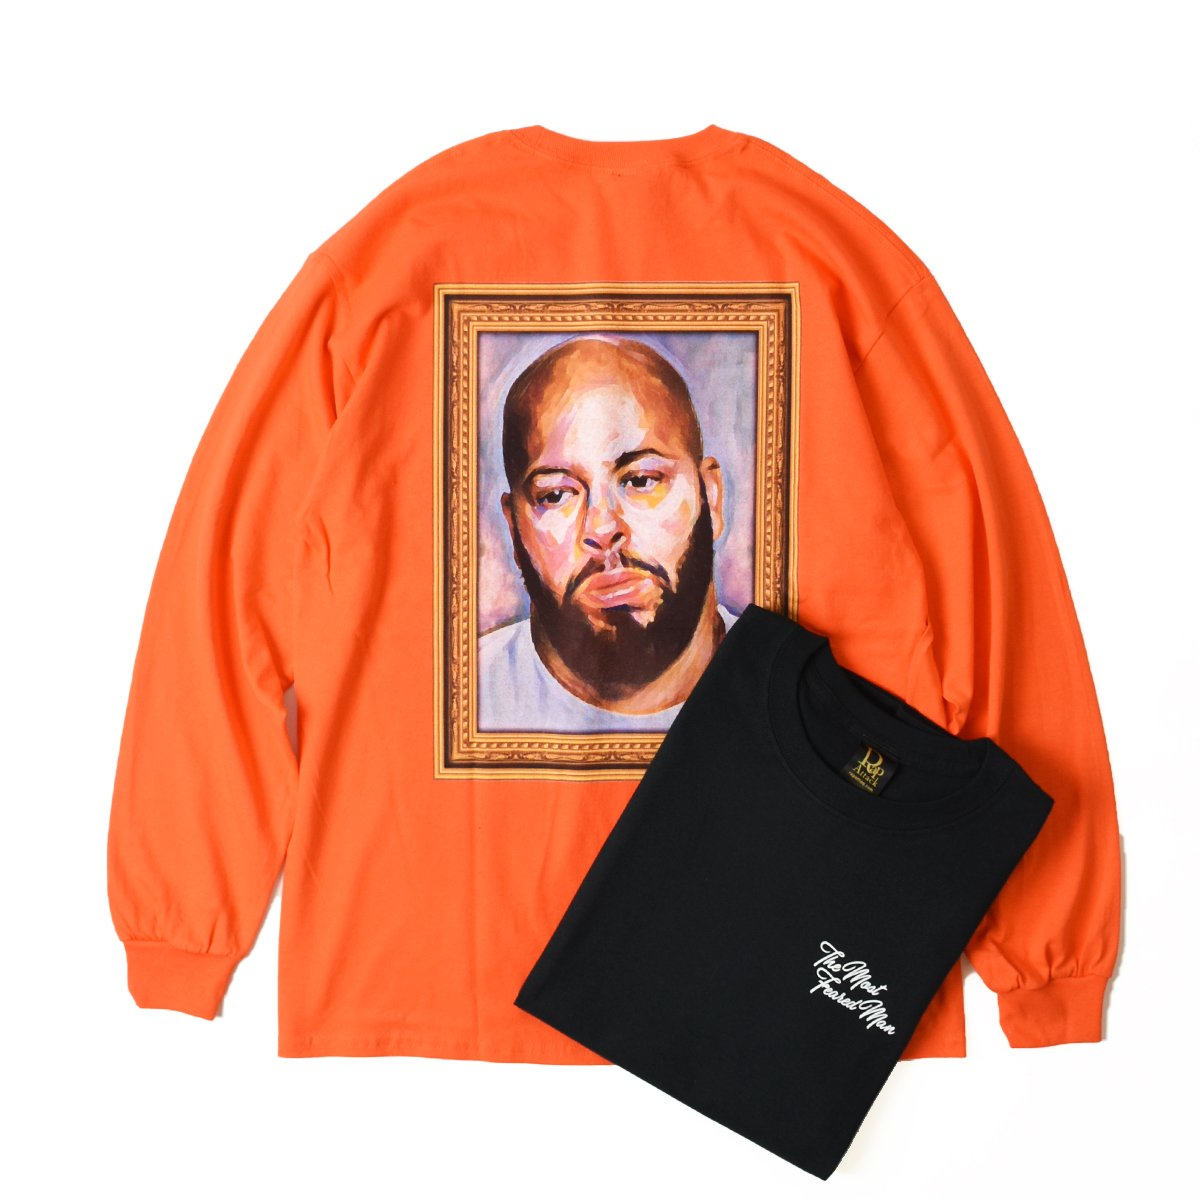 <img class='new_mark_img1' src='https://img.shop-pro.jp/img/new/icons8.gif' style='border:none;display:inline;margin:0px;padding:0px;width:auto;' />【RAP ATTACK】The Most Feared Man L/S Tee (2Color)                           </a>             <span class=